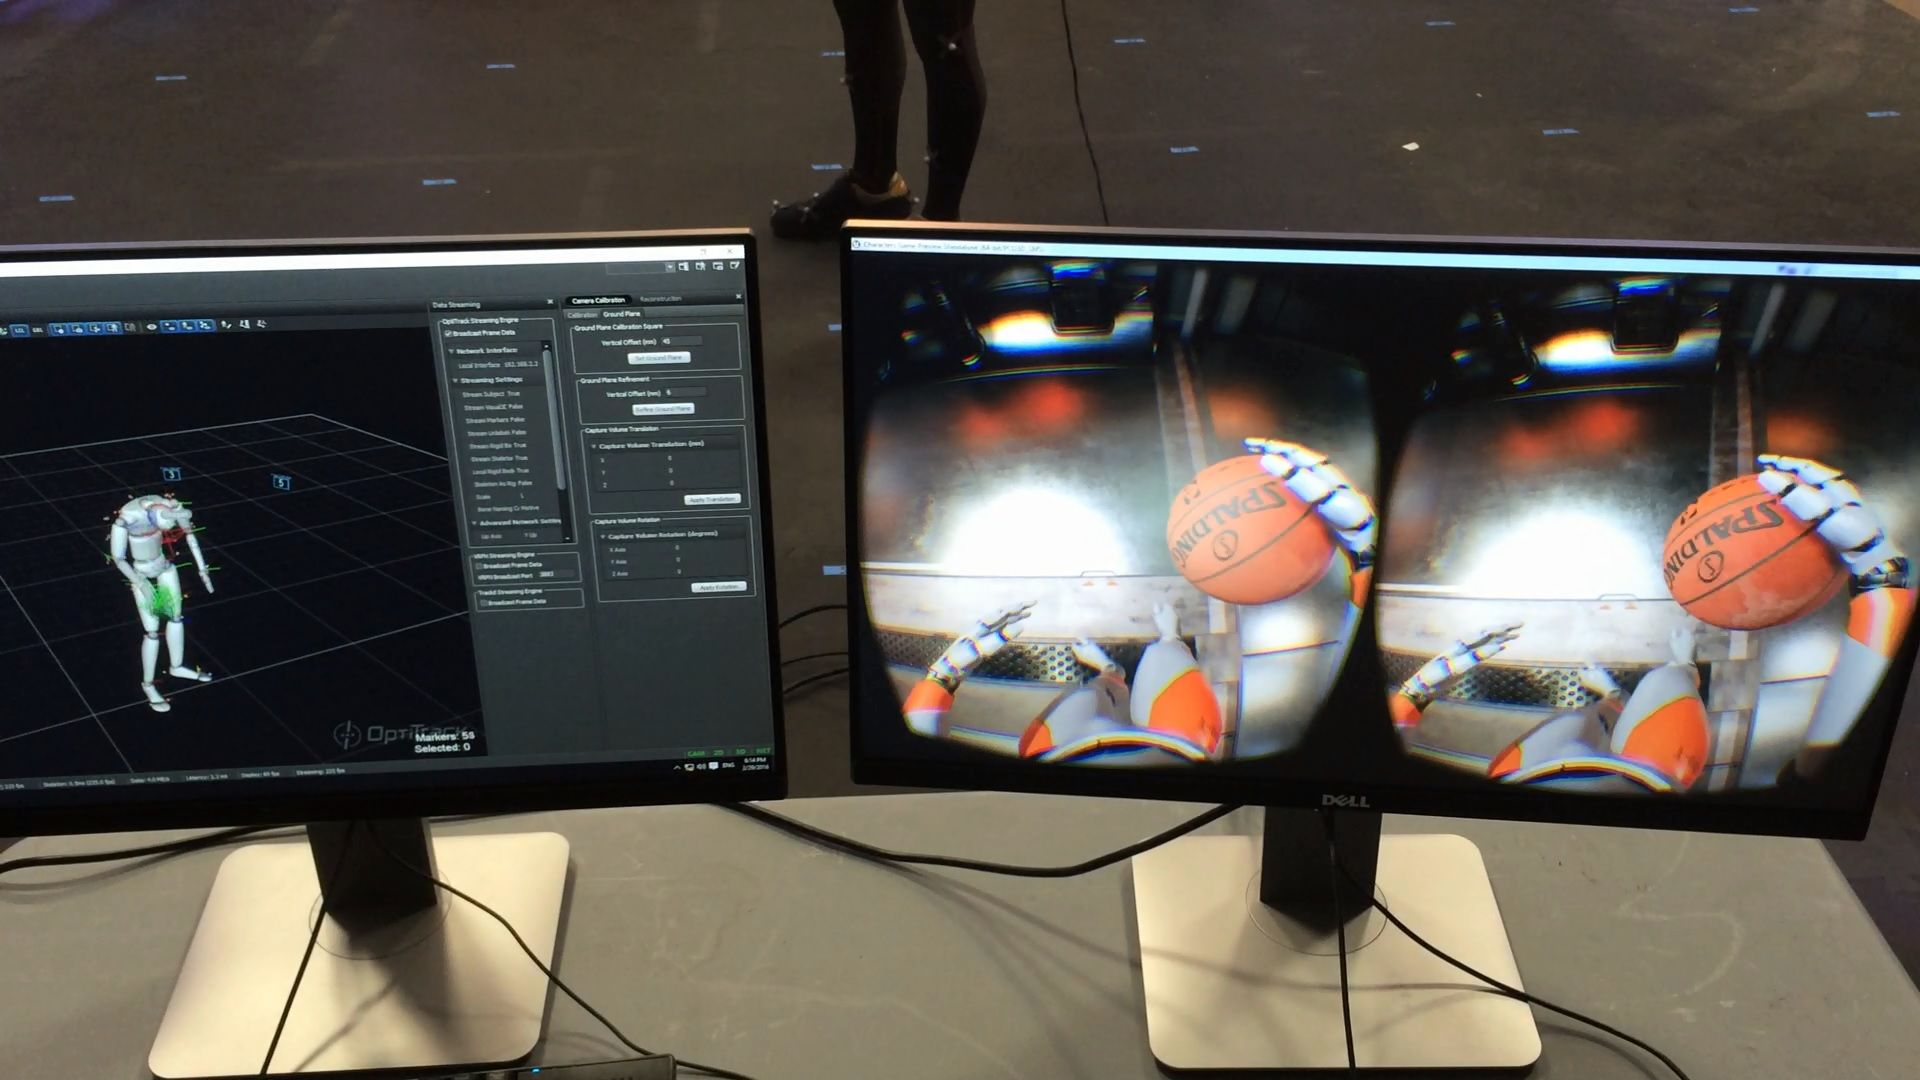 Developers can create virtual production setups in Unreal